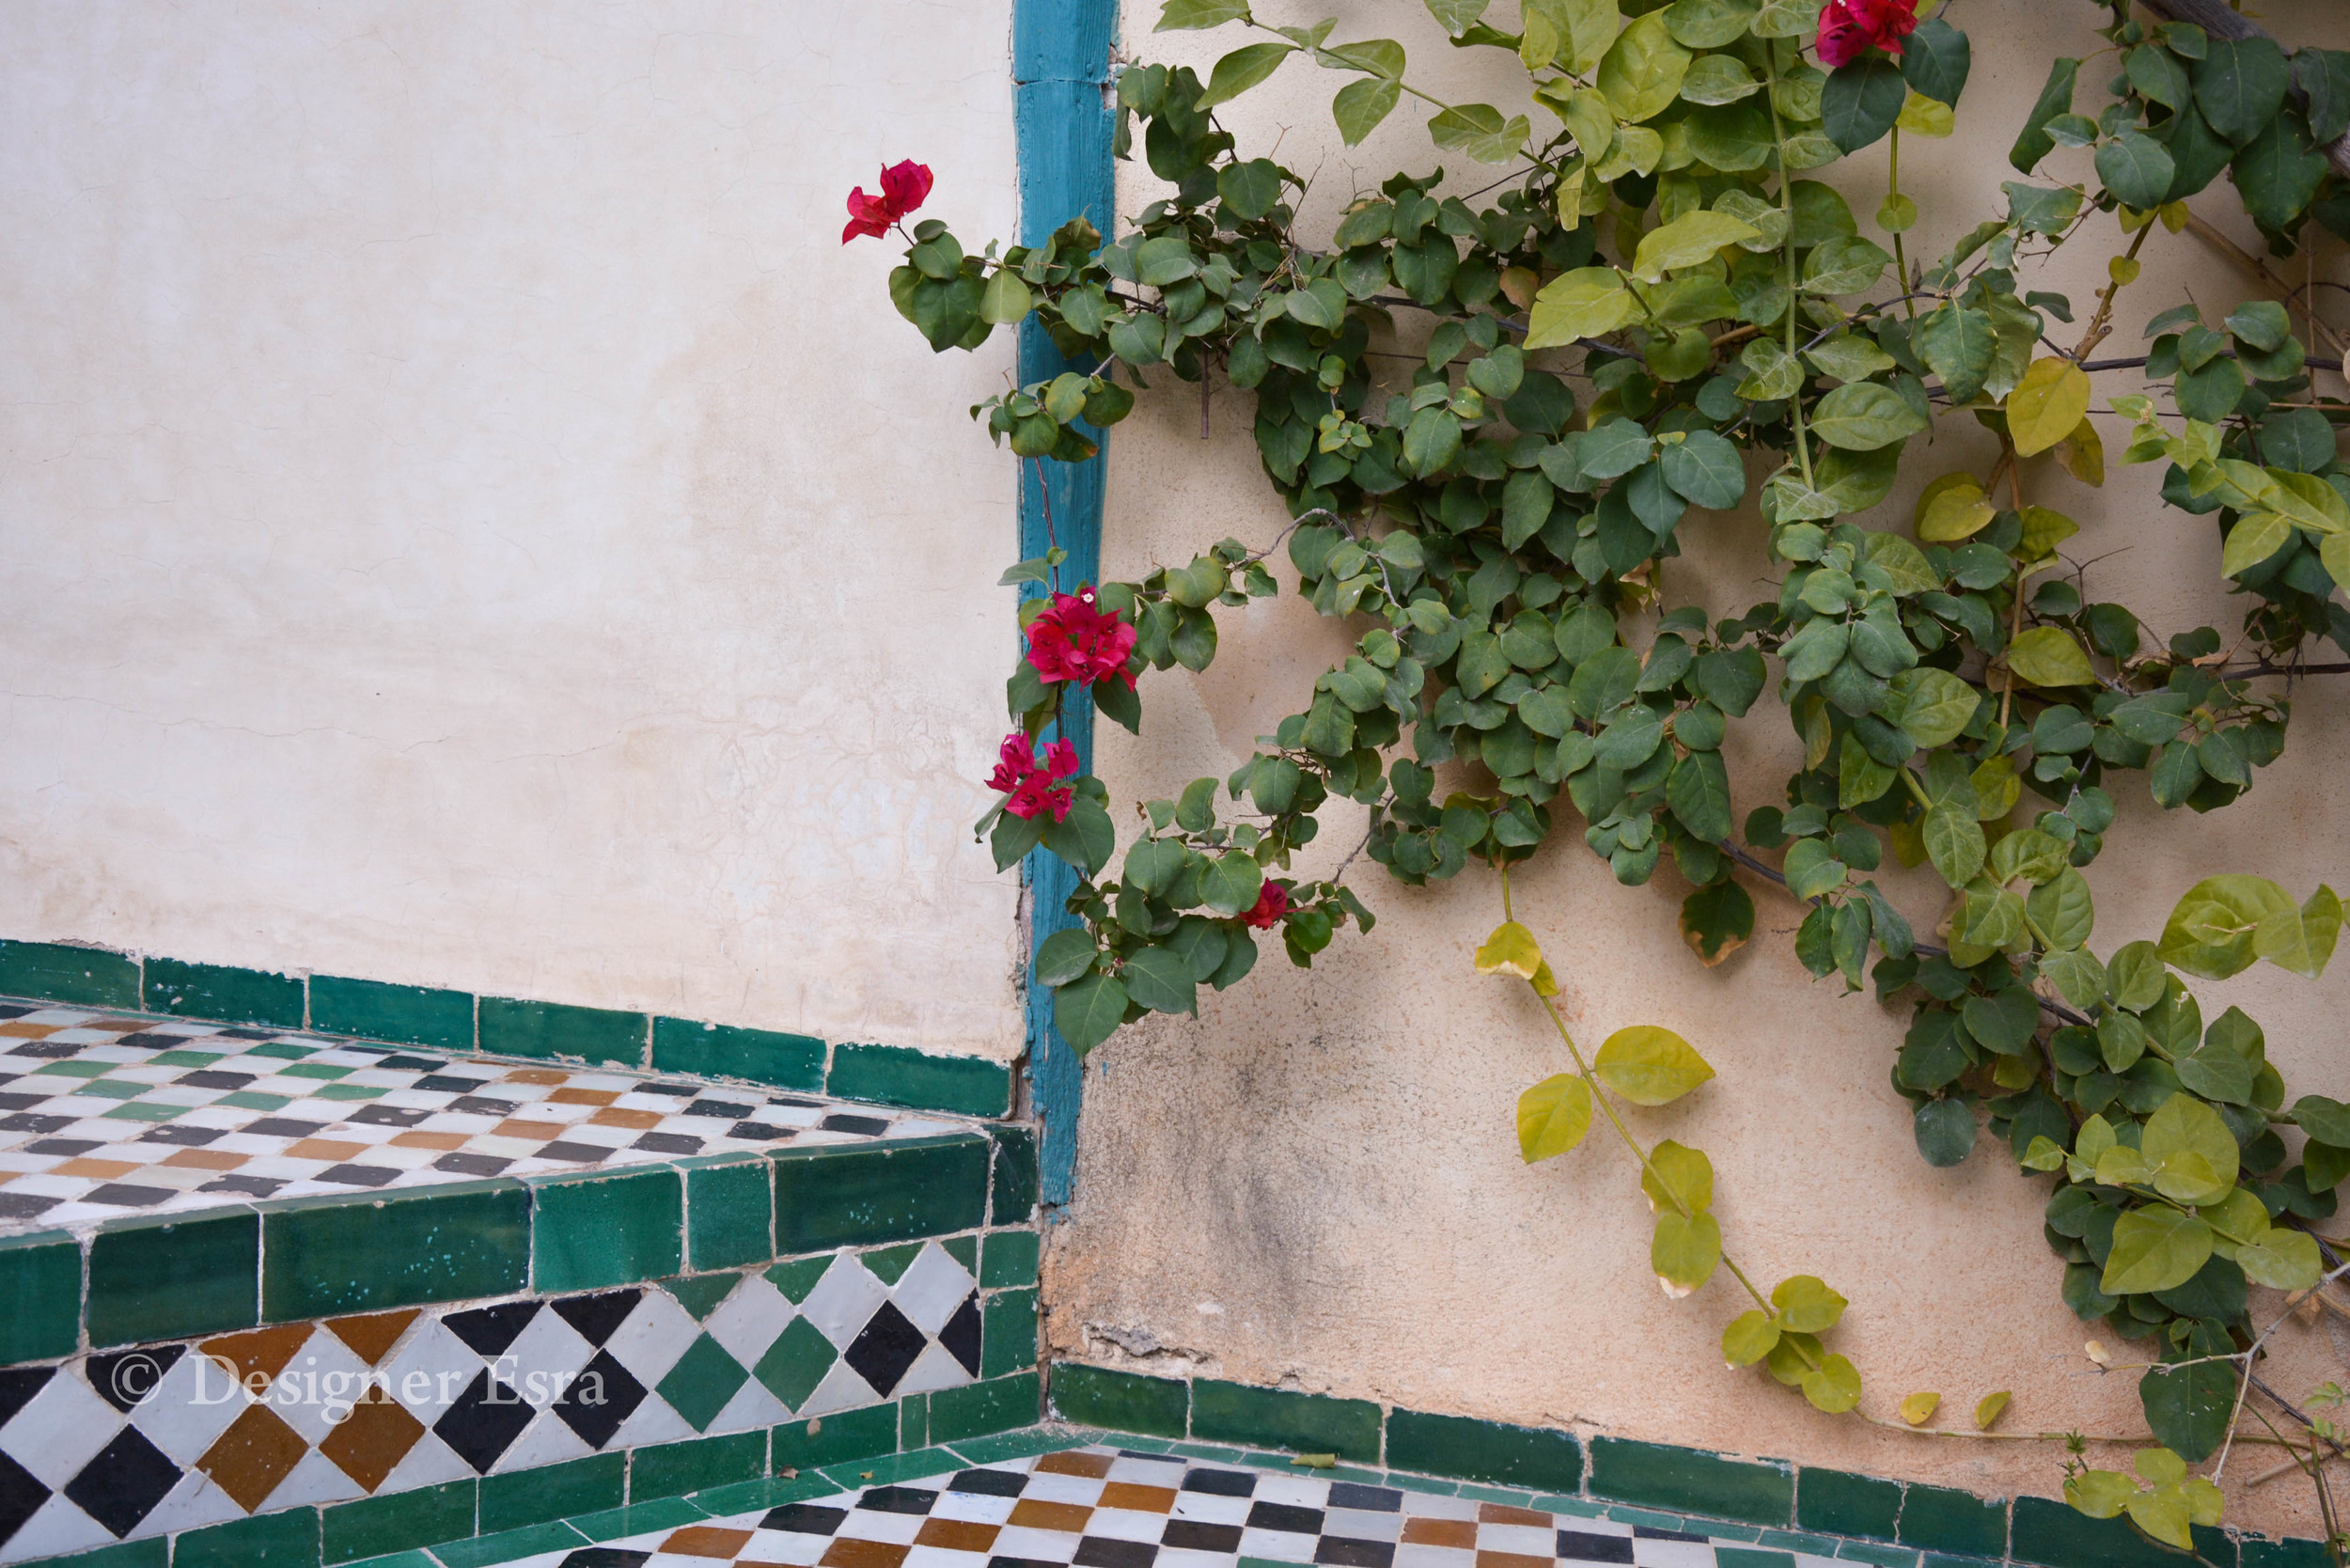 Moroccan Tiles in Cafe Fez